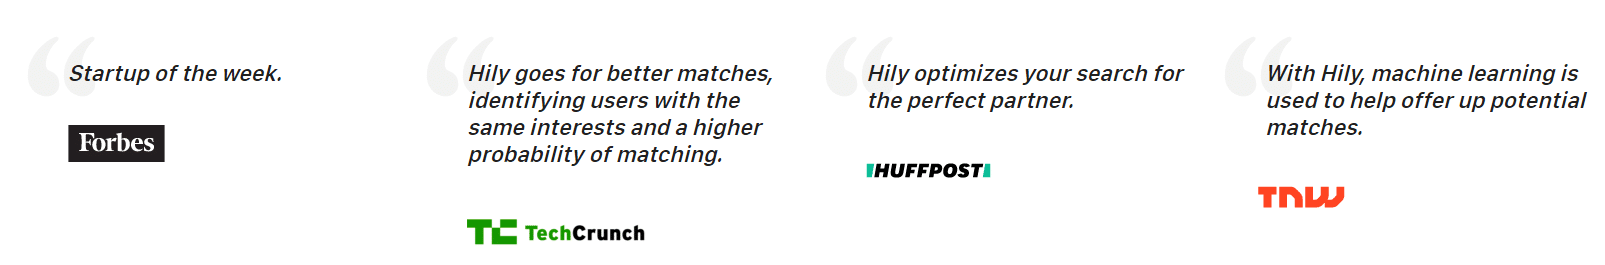 Hily Dating App Review Article Image 6